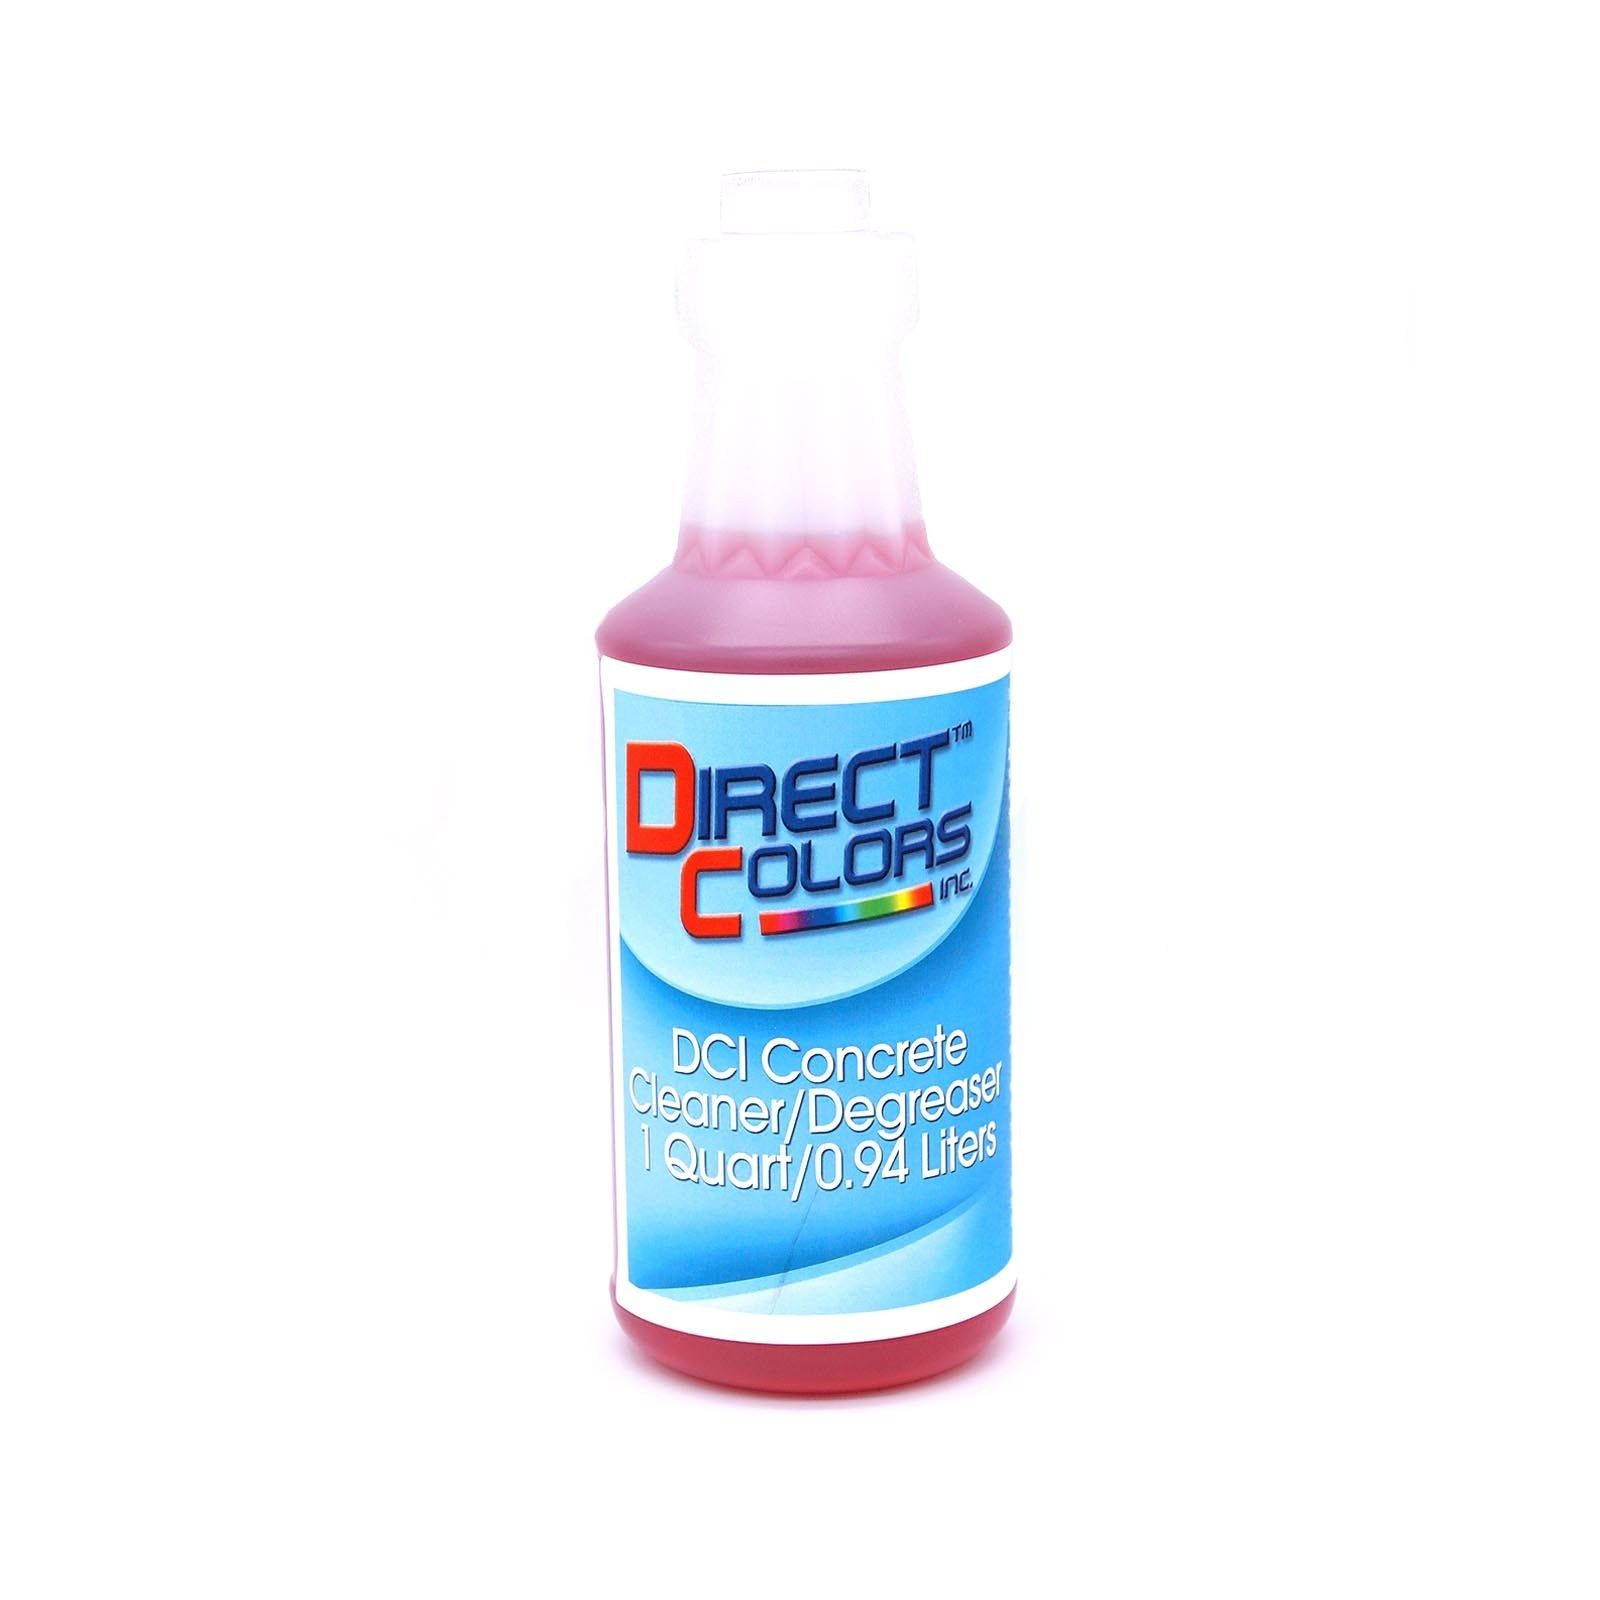 Cleaner degreaser concentrate degreasers concrete